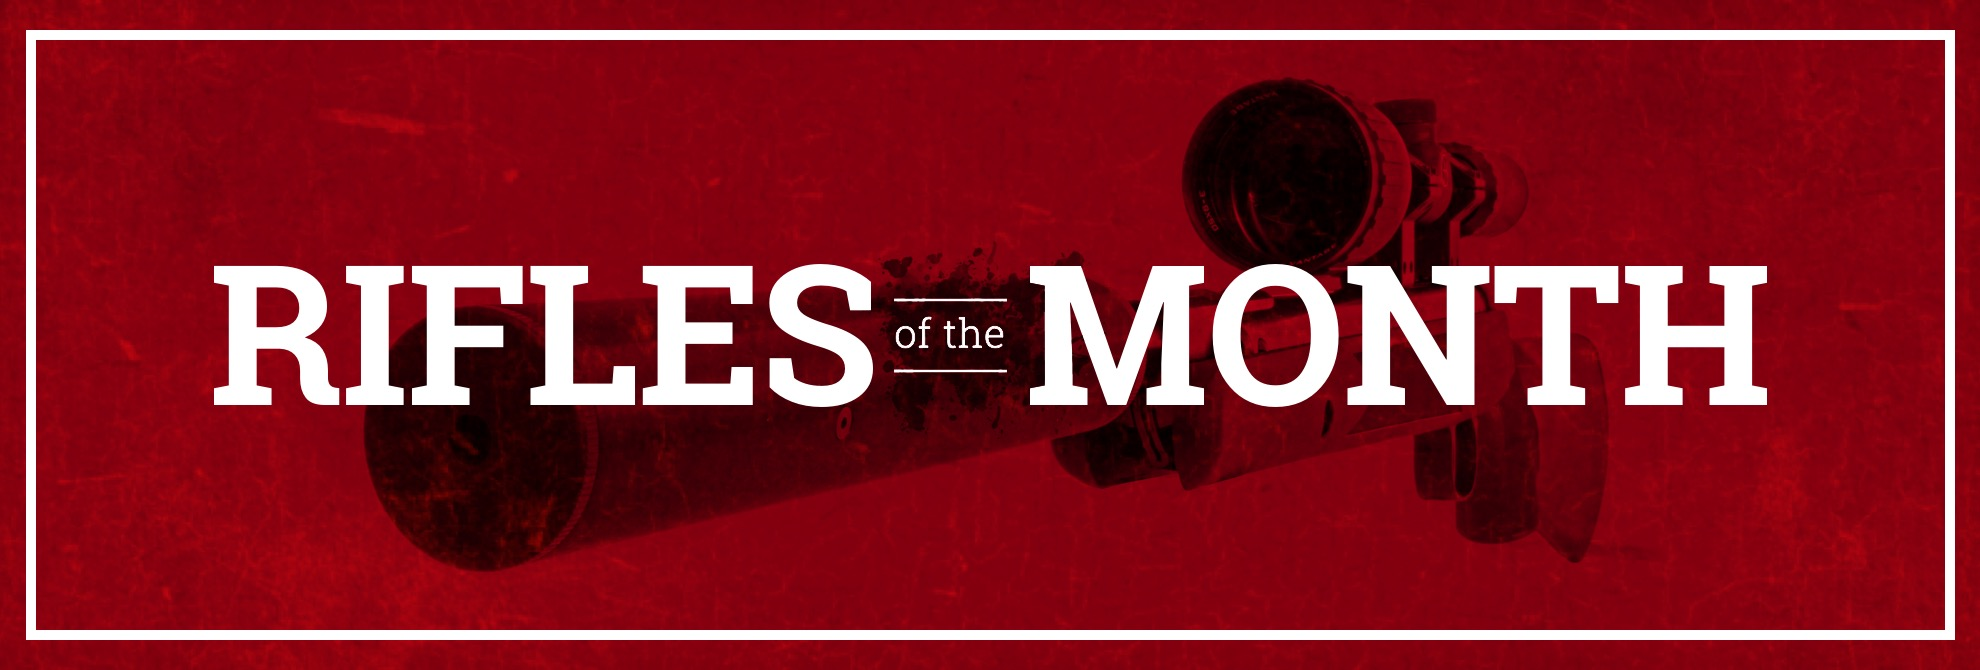 Check out the latest rifles of the month!